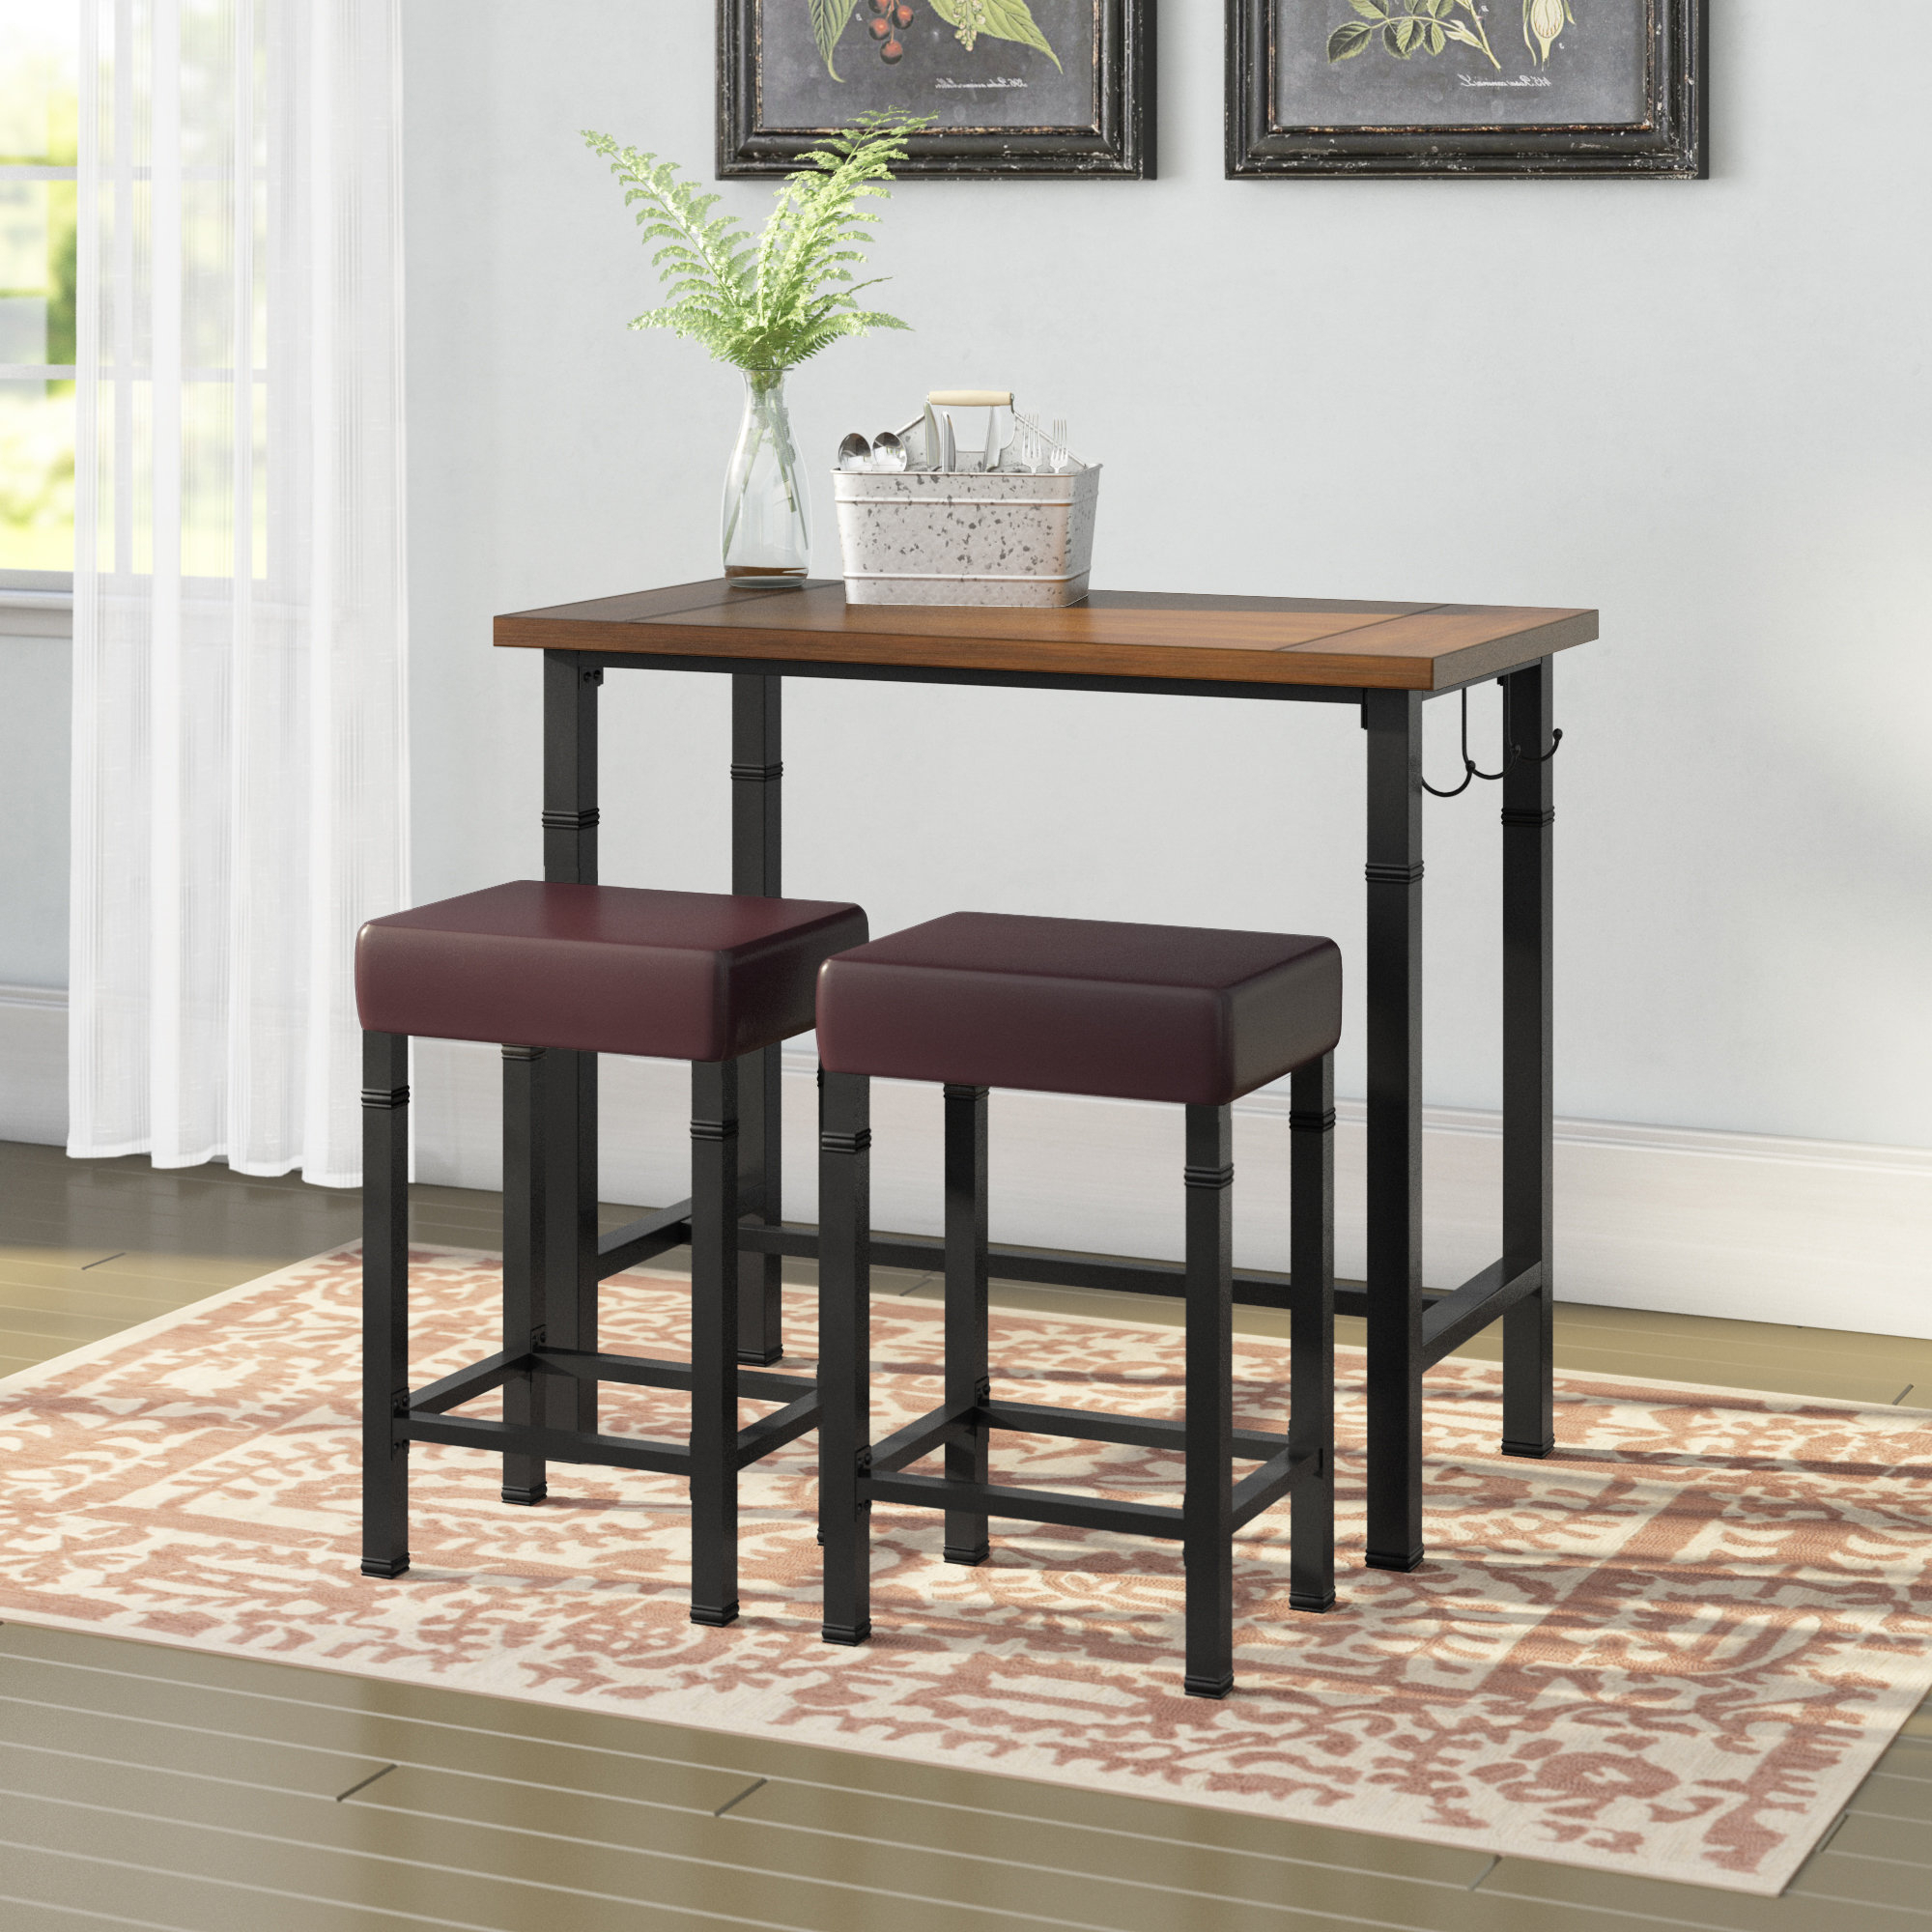 Lillard 3 Piece Breakfast Nook Dining Sets Within Most Recent Laurel Foundry Modern Farmhouse Sevigny 3 Piece Pub Table Set (View 7 of 25)